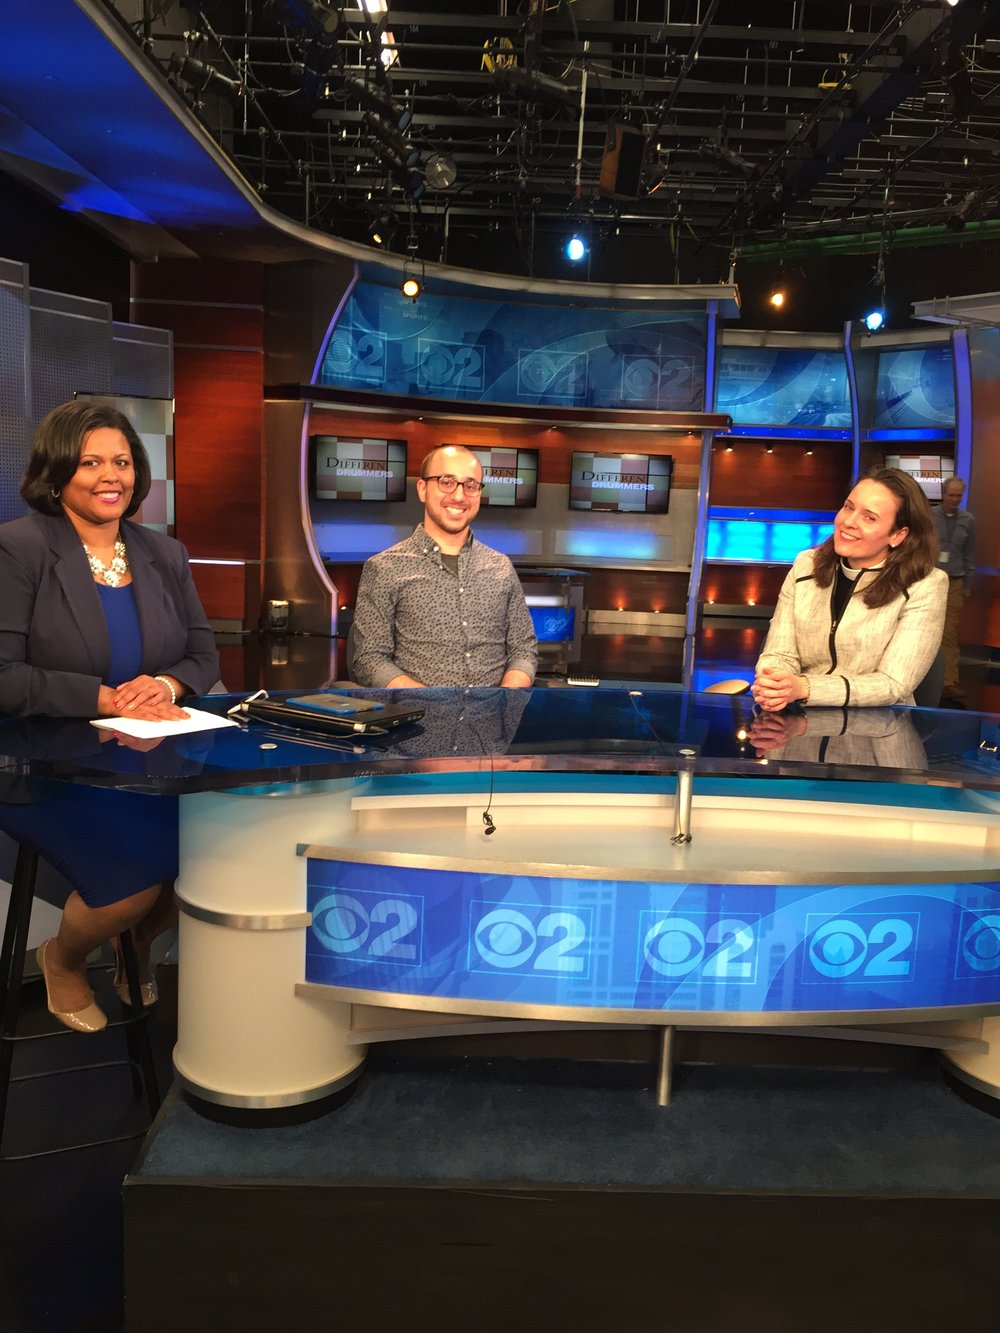 Bassel interviewing at CBS Chicago for Different Drummers discussing the humanitarian crisis in Syria.